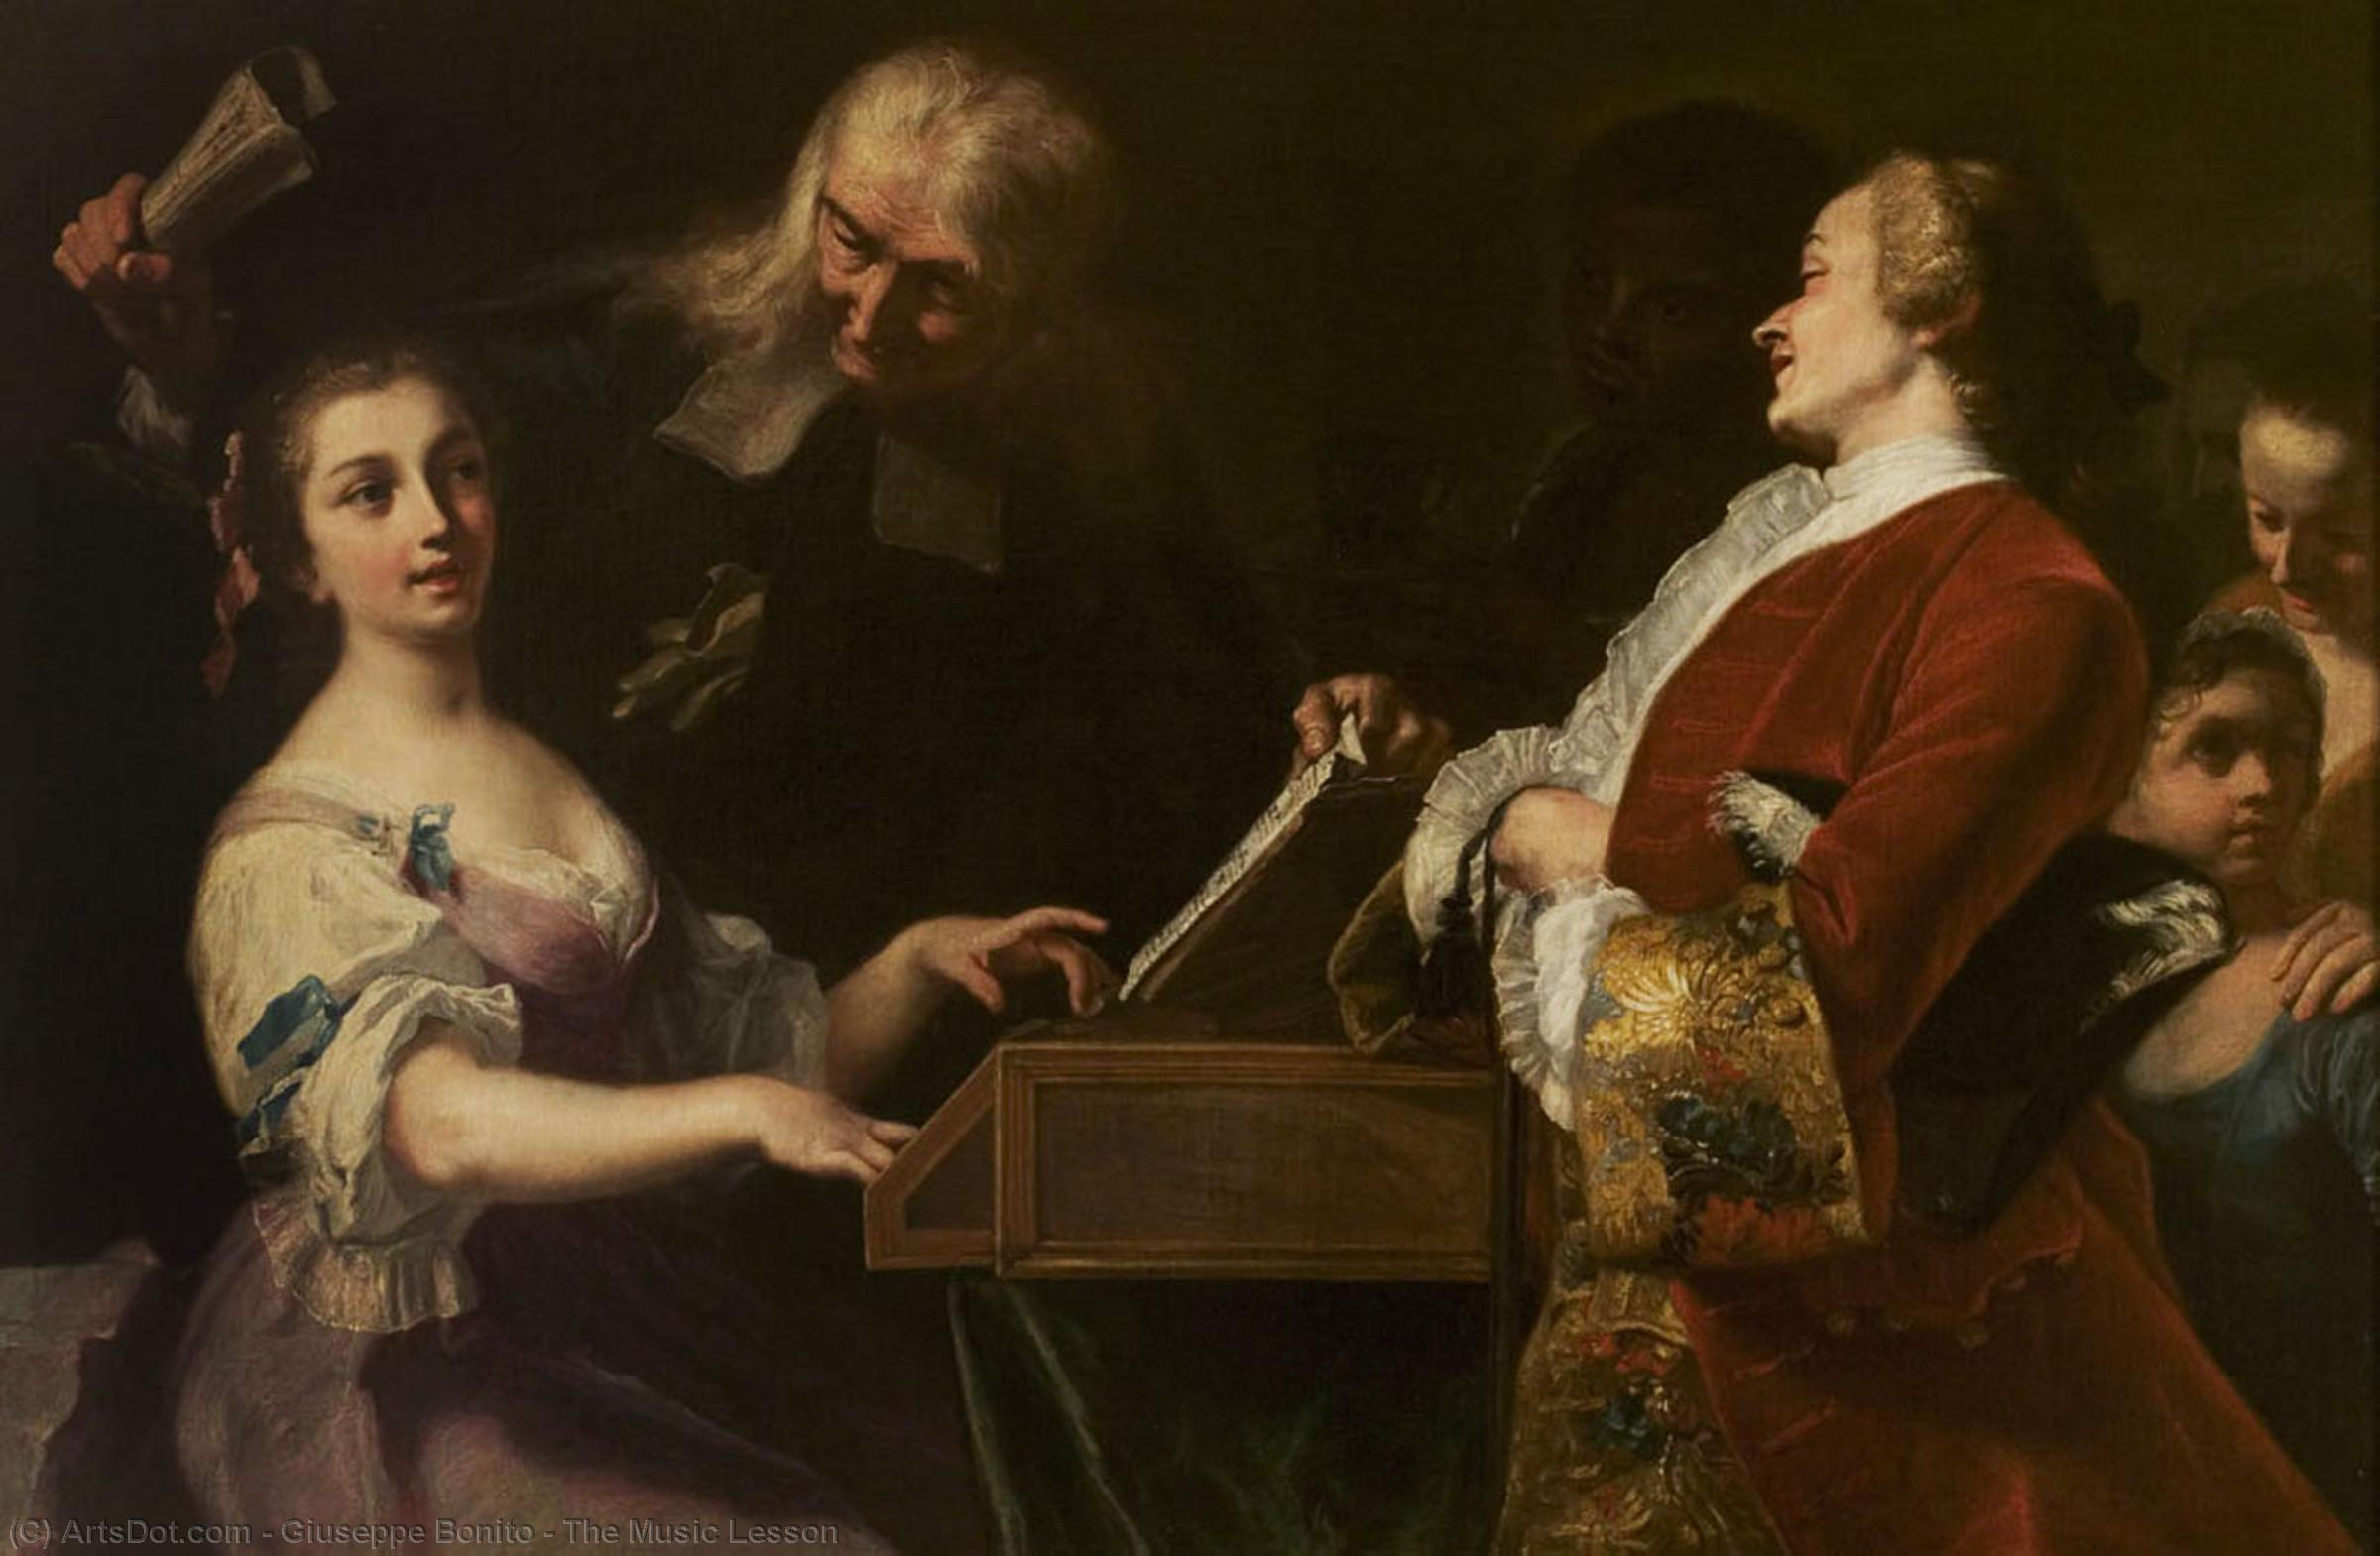 Order Museum Quality Copies | The Music Lesson, 1742 by Giuseppe Bonito (1707-1789) | ArtsDot.com